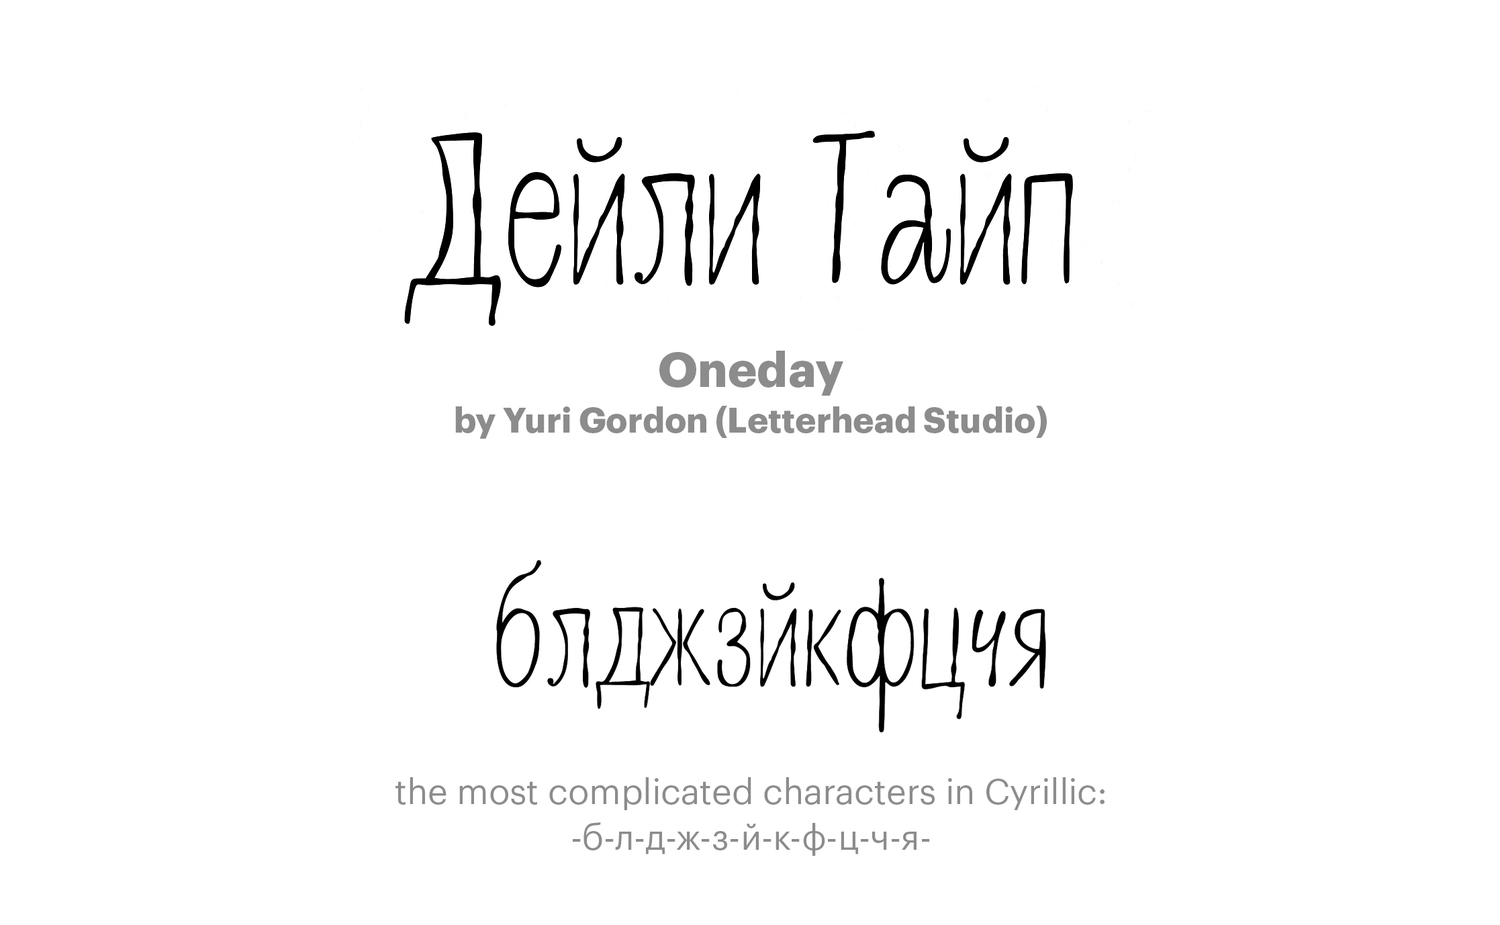 Oneday-by-Yuri-Gordon-(Letterhead-Studio)